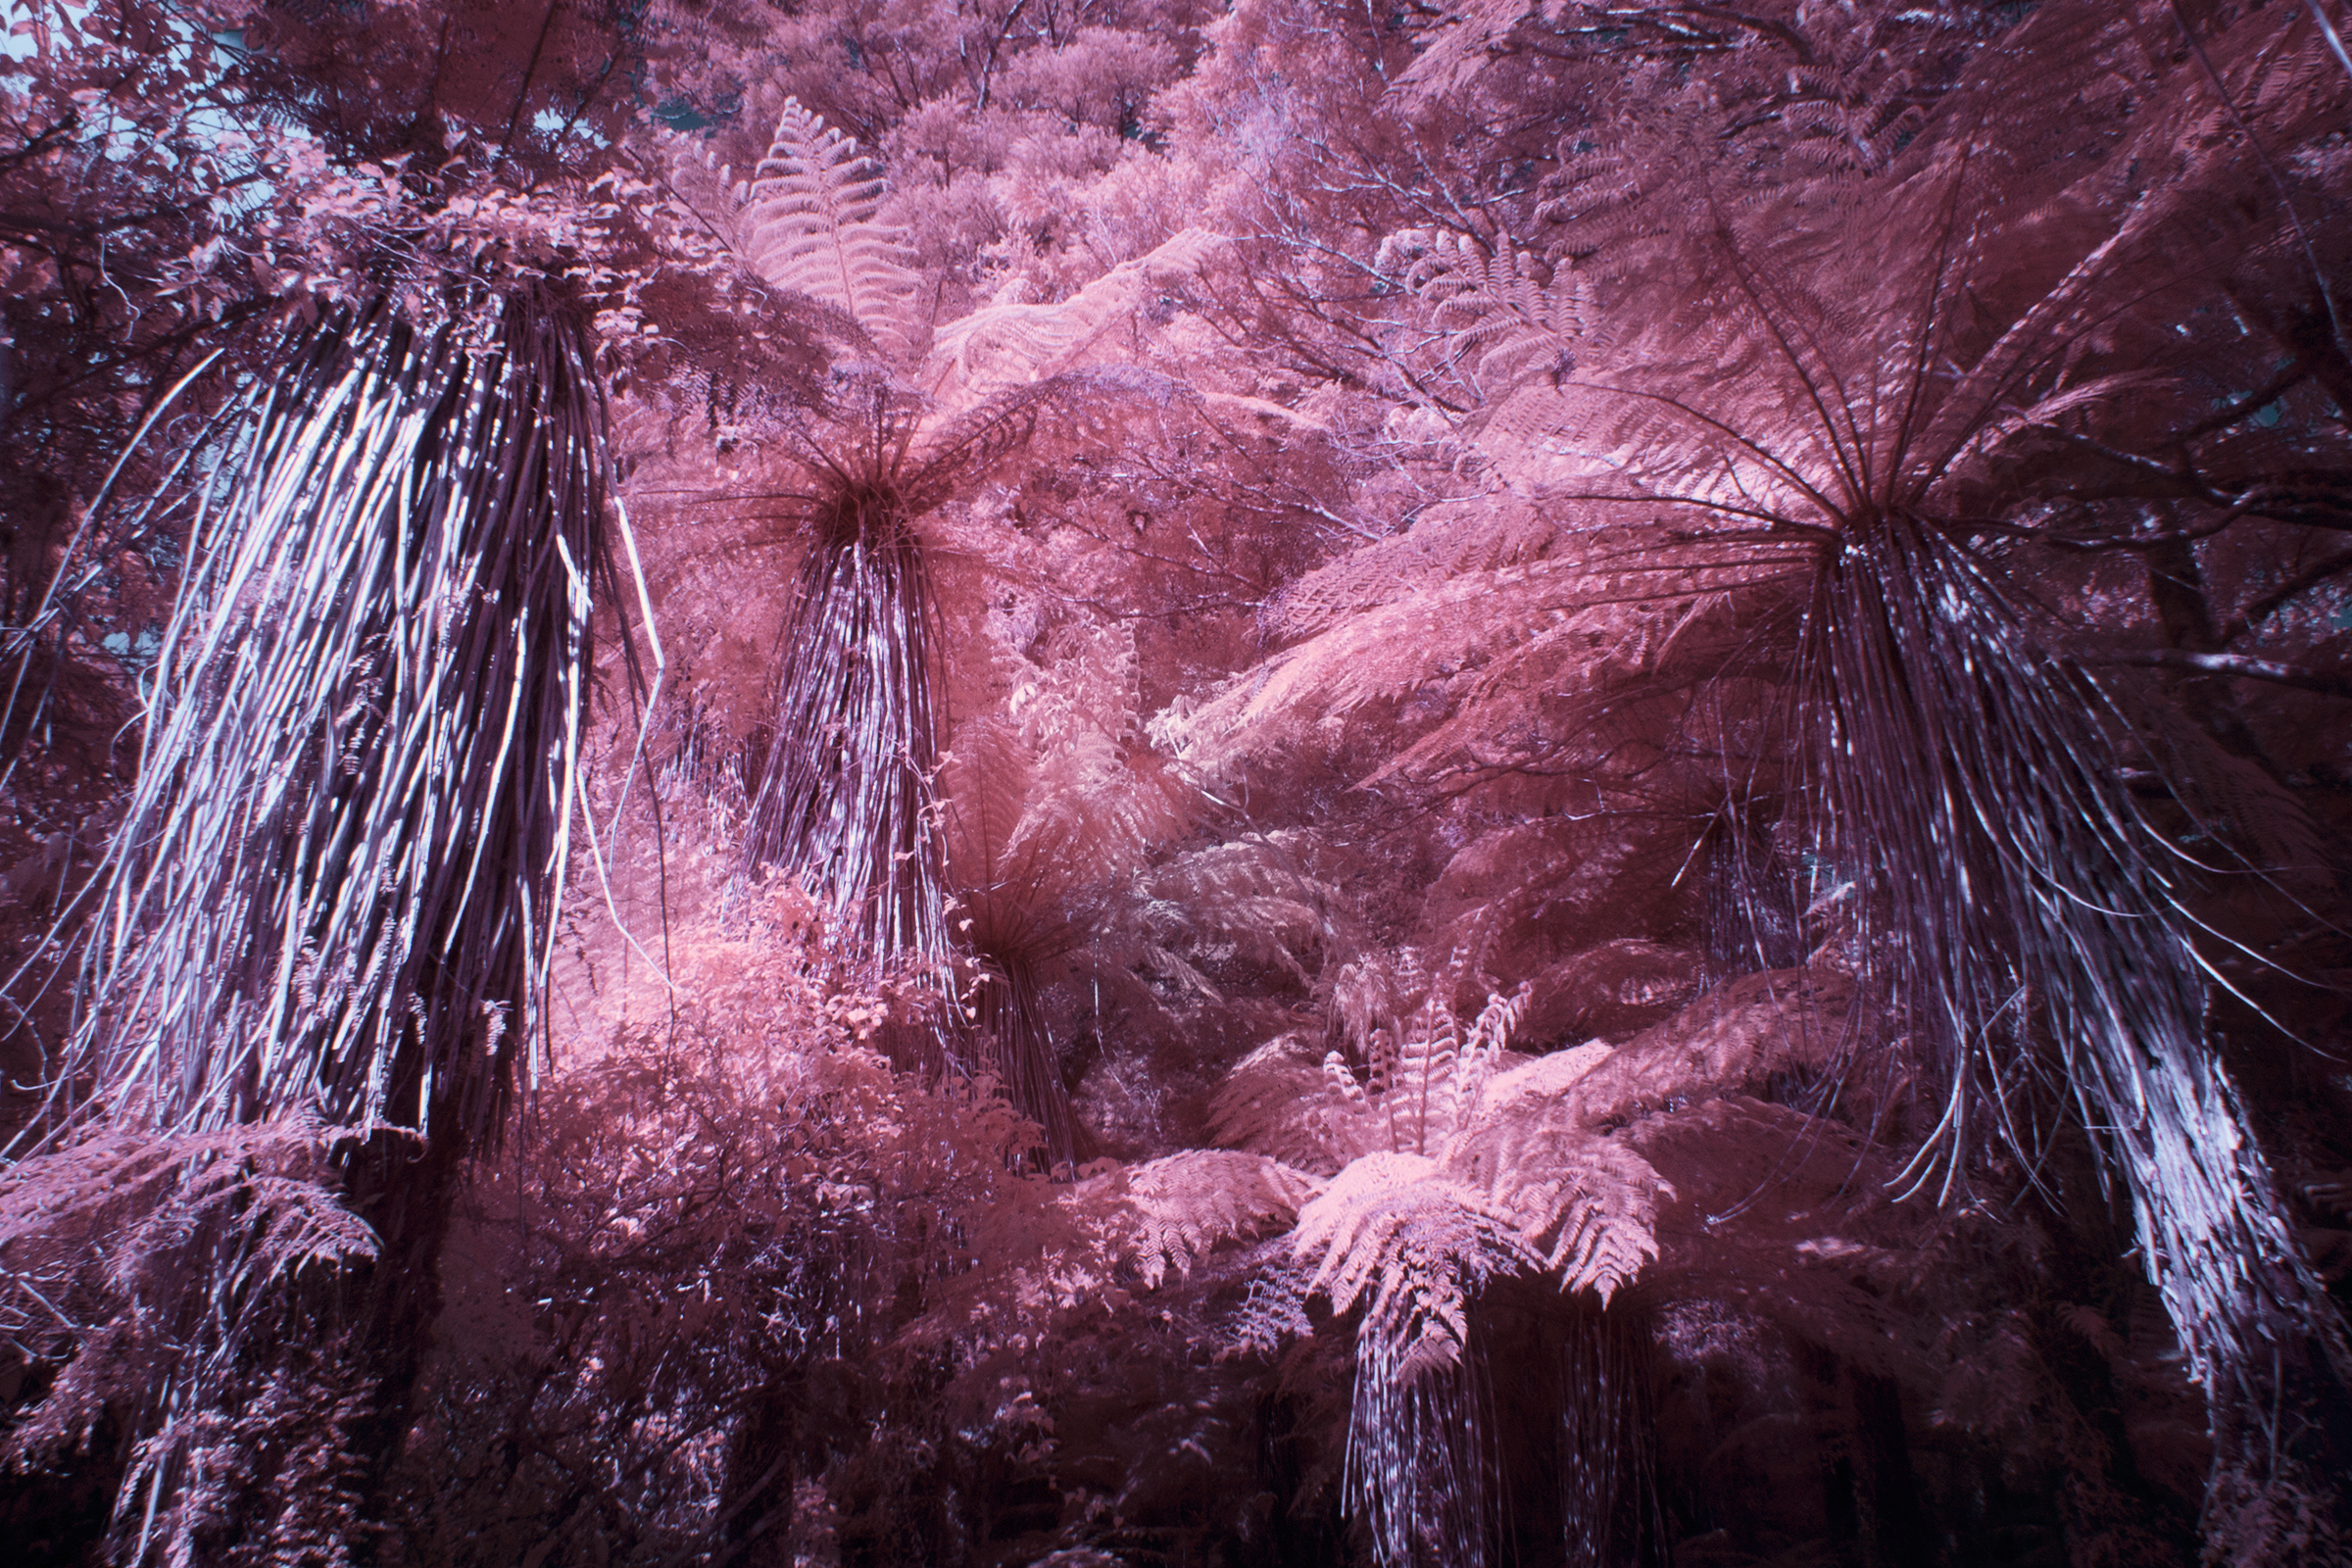 Paul Hoi Group Study Infrared Photography New Zealand 9